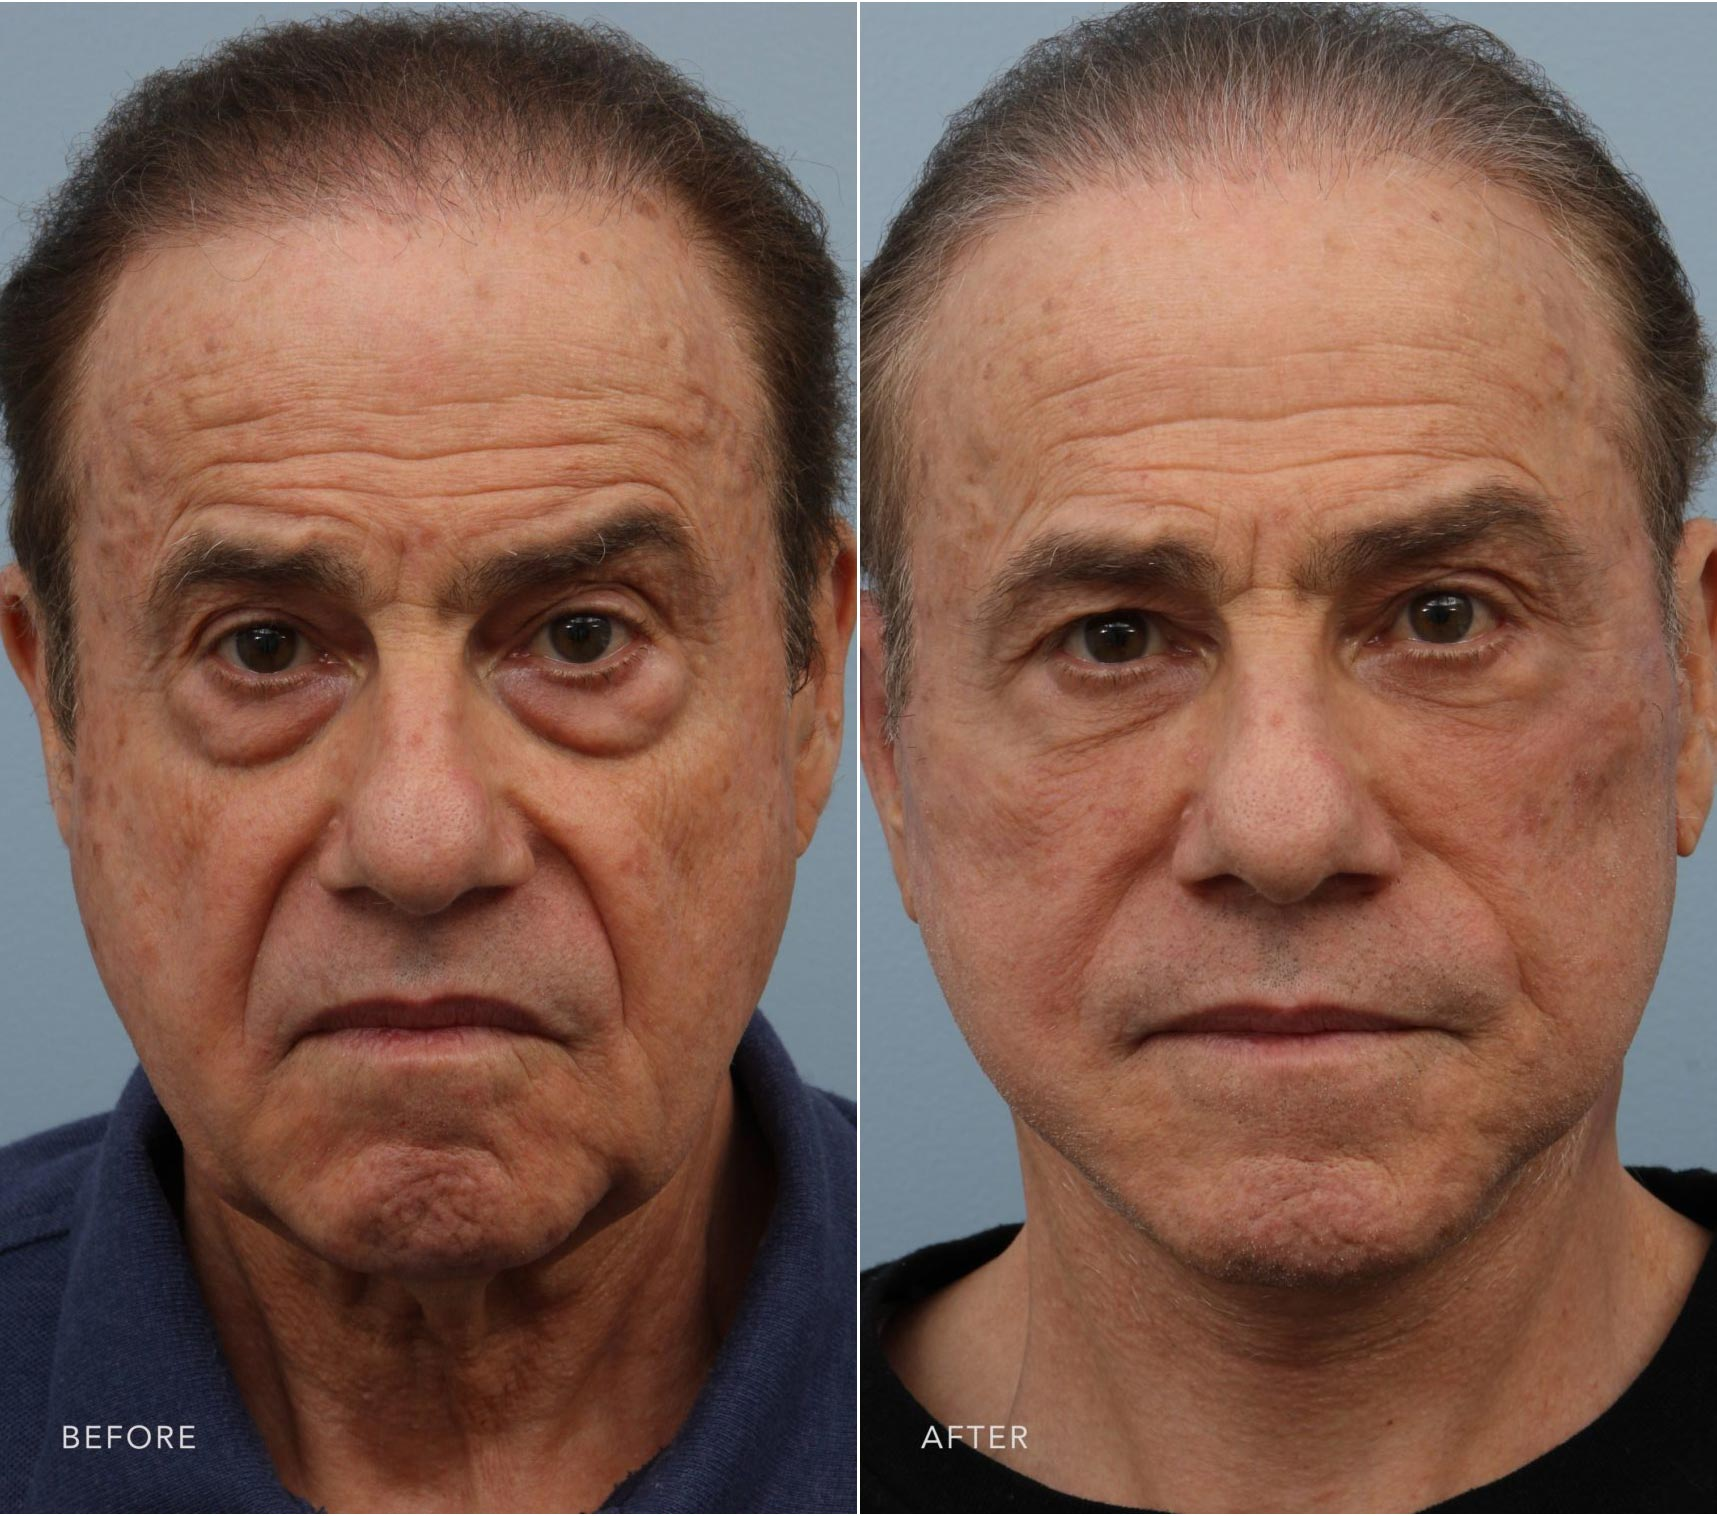 Closeup of a male patient before and after a deep plane facelift and blepharoplasty, which transformed his face and neck